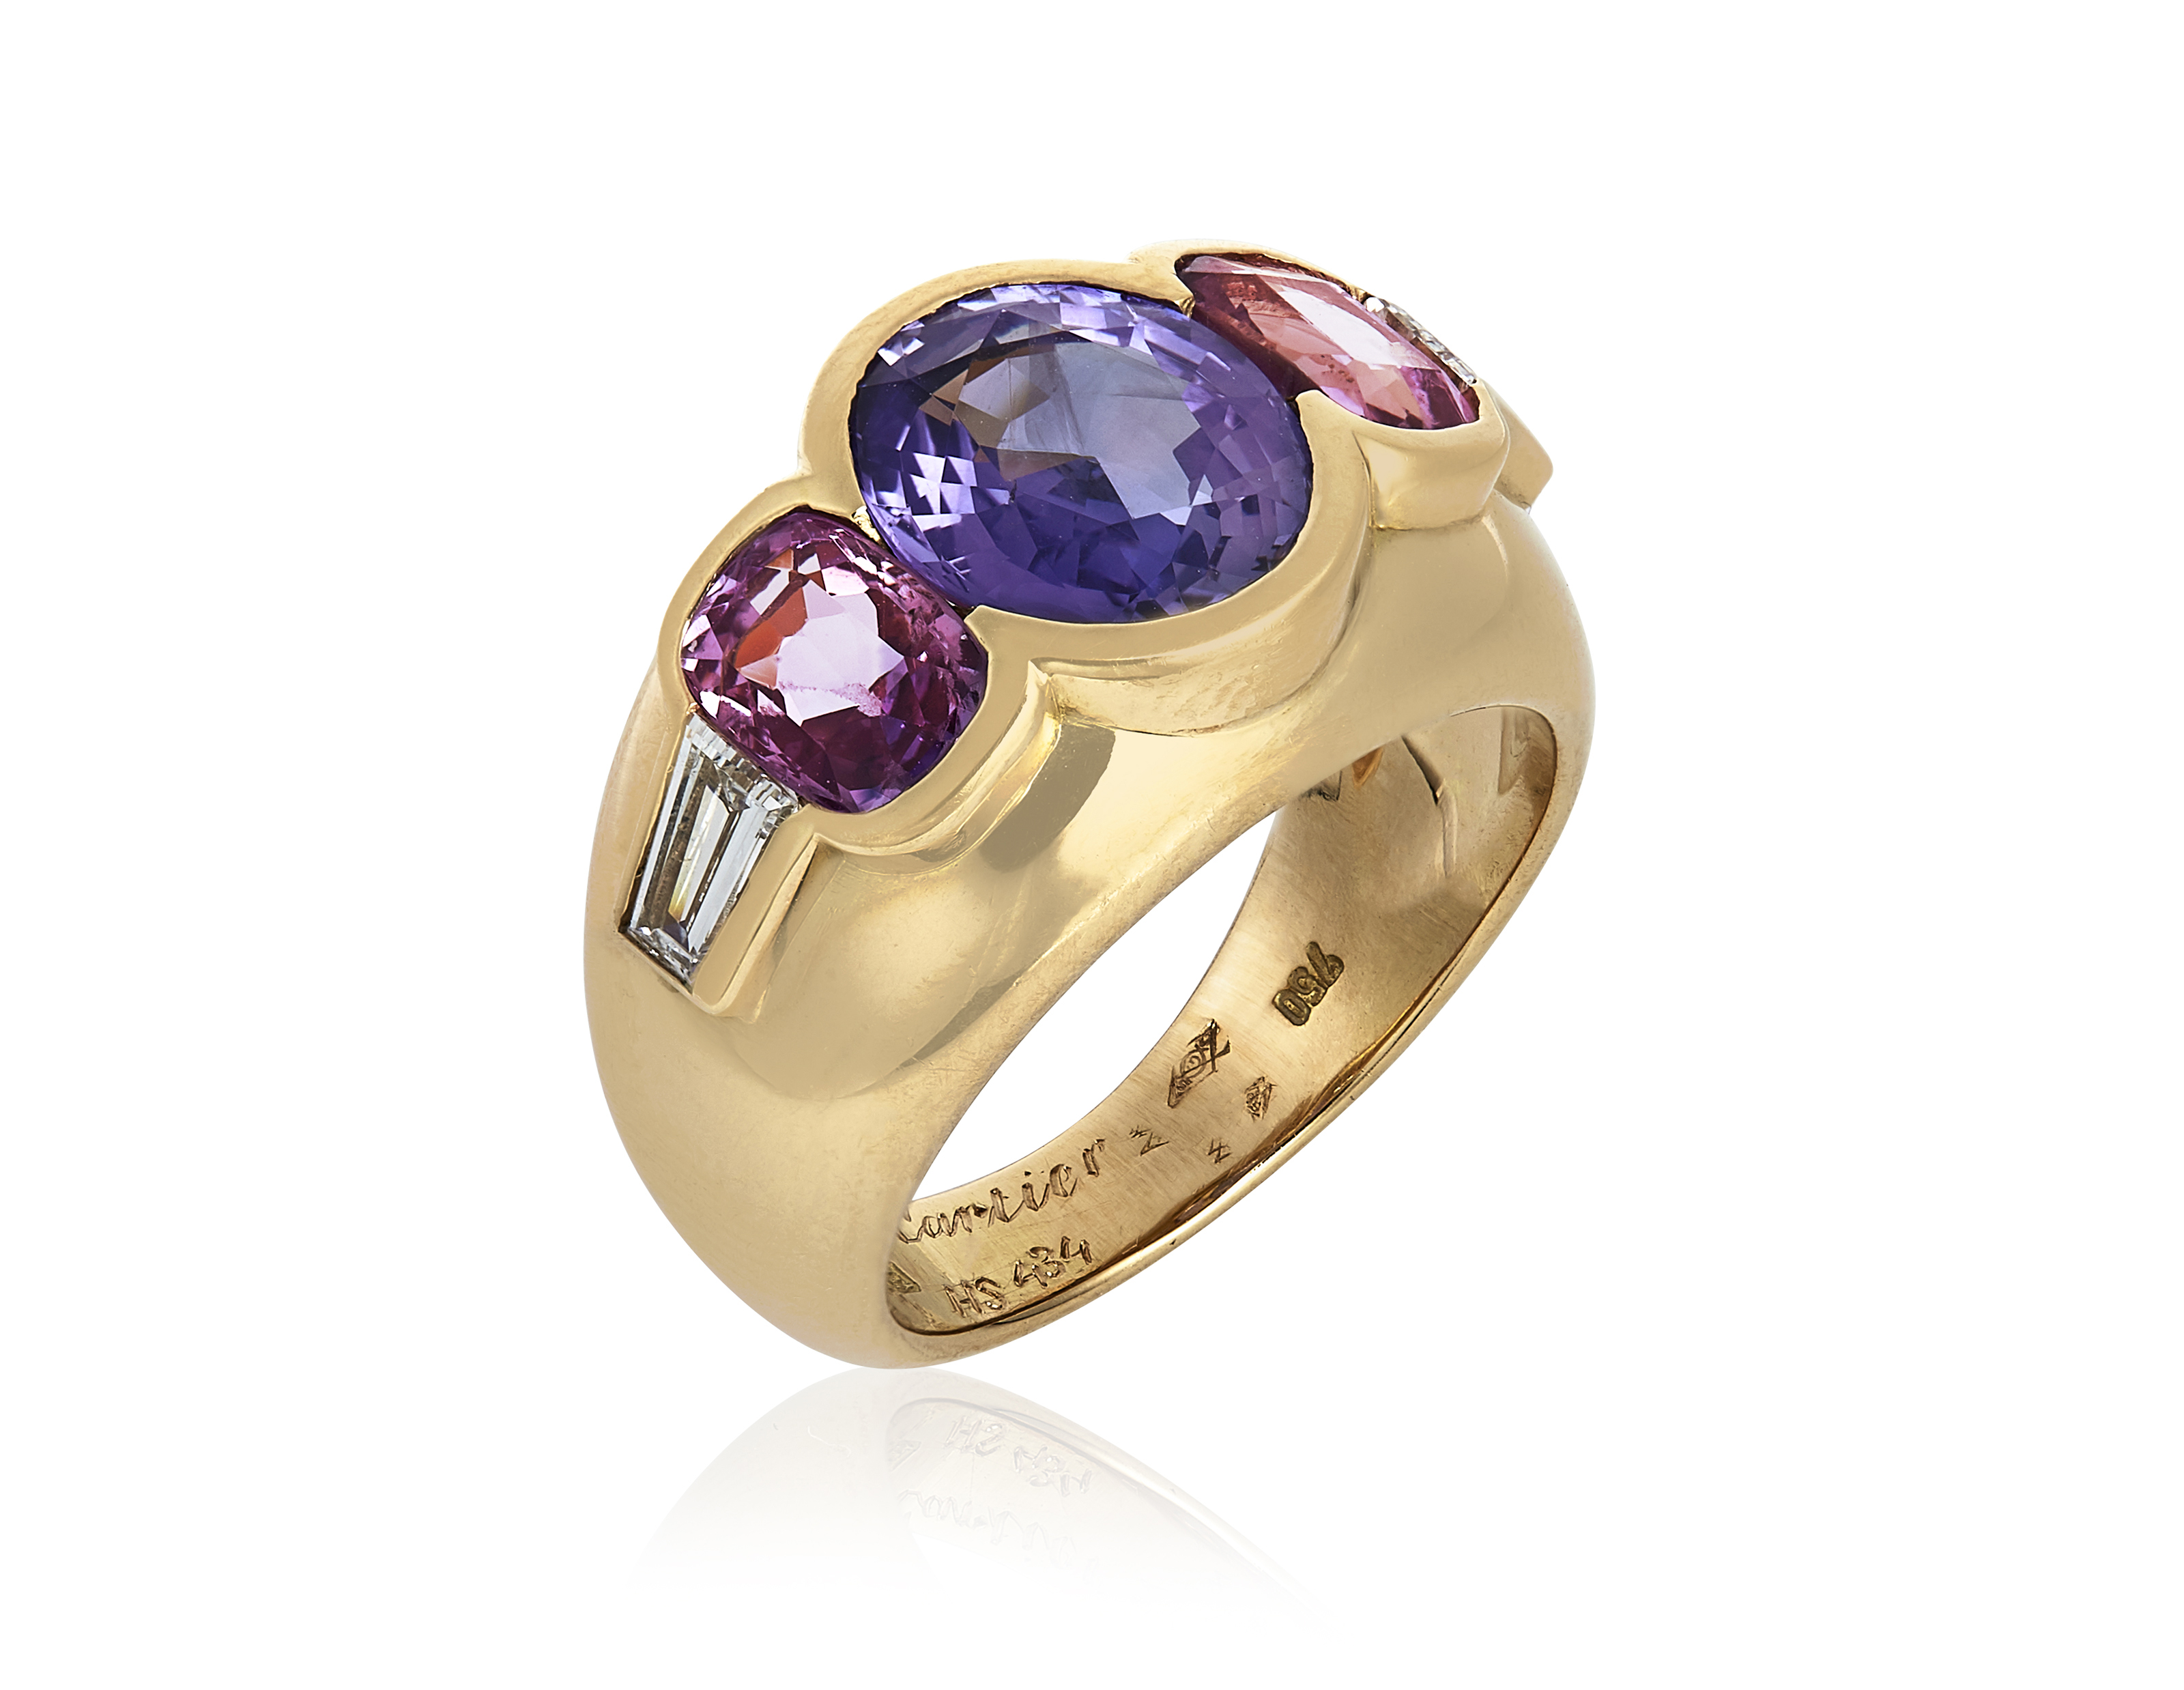 pink sapphire jewelry ring lyst in metallic rose love cartier